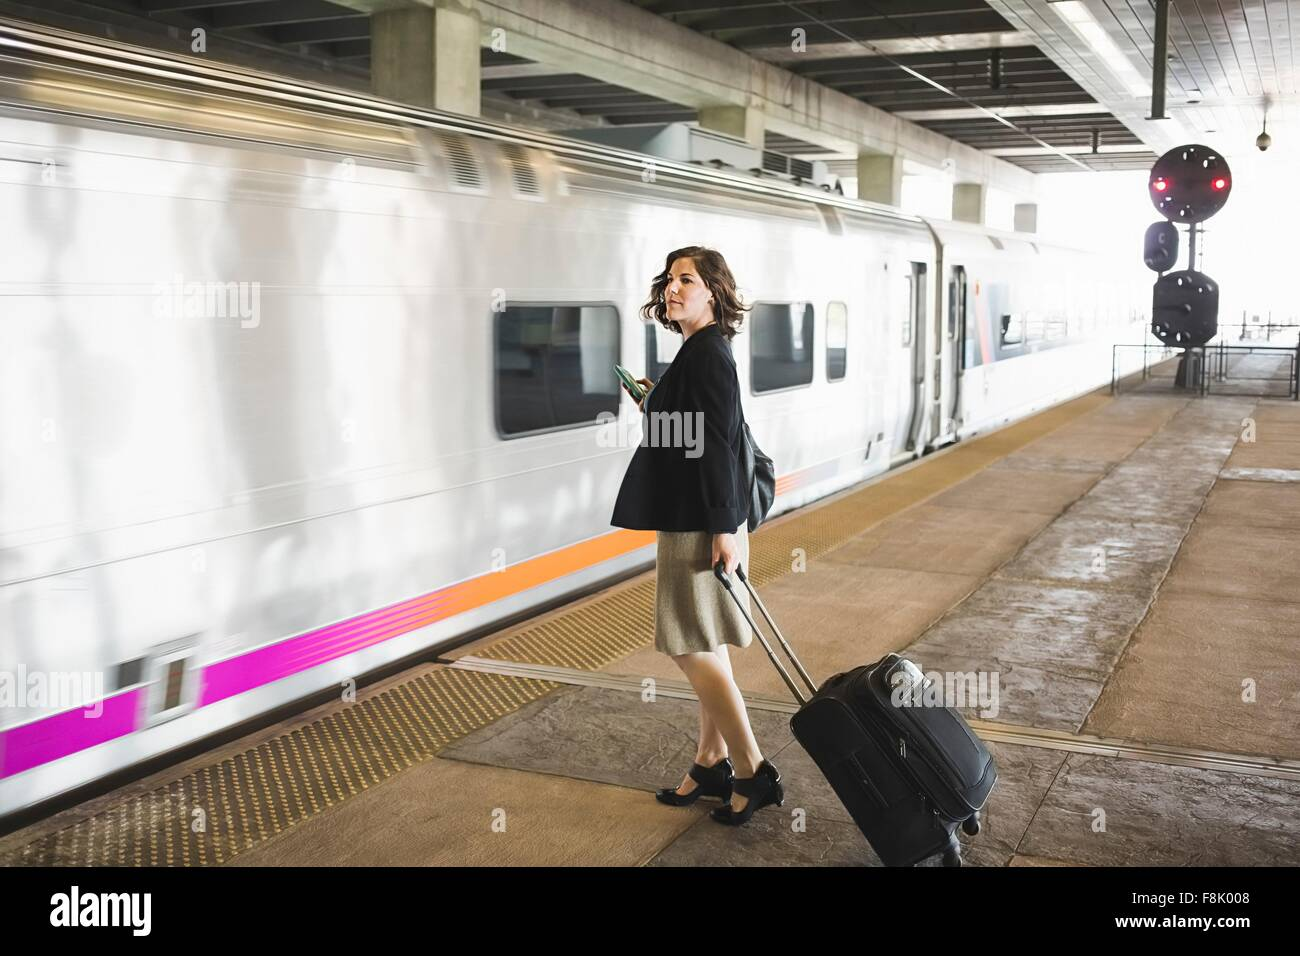 Mid adult woman waiting to board train, holding wheeled suitcase and smartphone - Stock Image